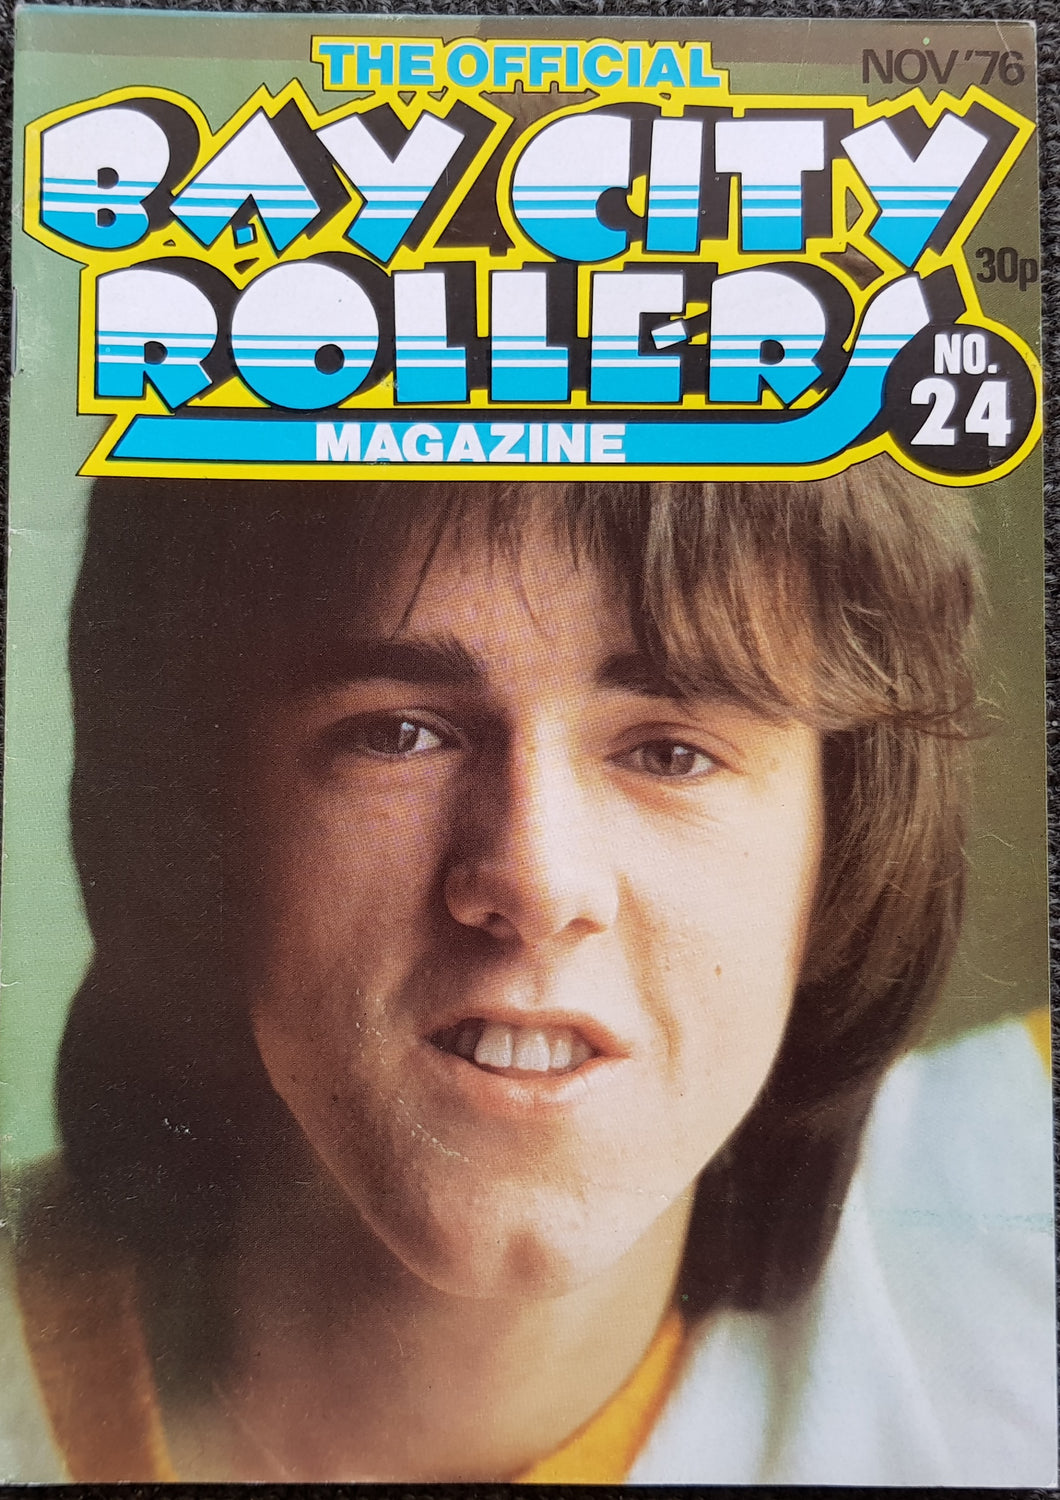 Bay City Rollers - The Official Bay City Rollers Magazine No.24